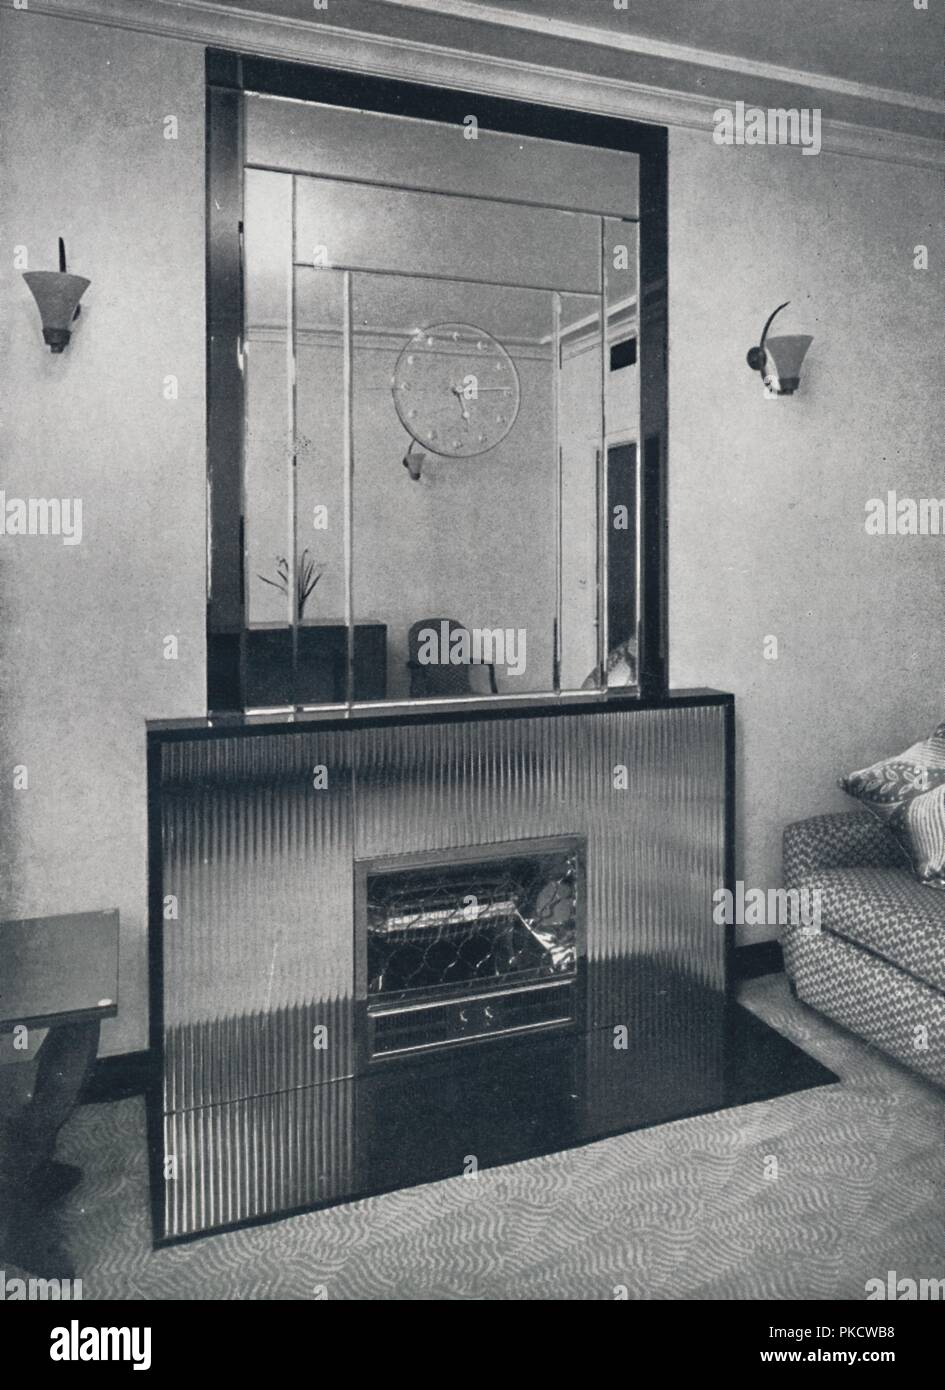 'W. Curtis Green, R.A. - Electric fireplace and overmantel by James Clark & Son Ltd.', 1940. Overmantel is of 3/4 inch bevelled section mirror glass bordered by a Neutral tint mirror, withe brilliant-cut mirror clock face superimposed. Fire surround is of 3/4 inch white reeded silvered glass, set into black marble framework and hearth. From 'Decorative Art 1940 - The Studio Year Book, edited by C. G. Holme. [The Studio Ltd., London, 1940] - Stock Image